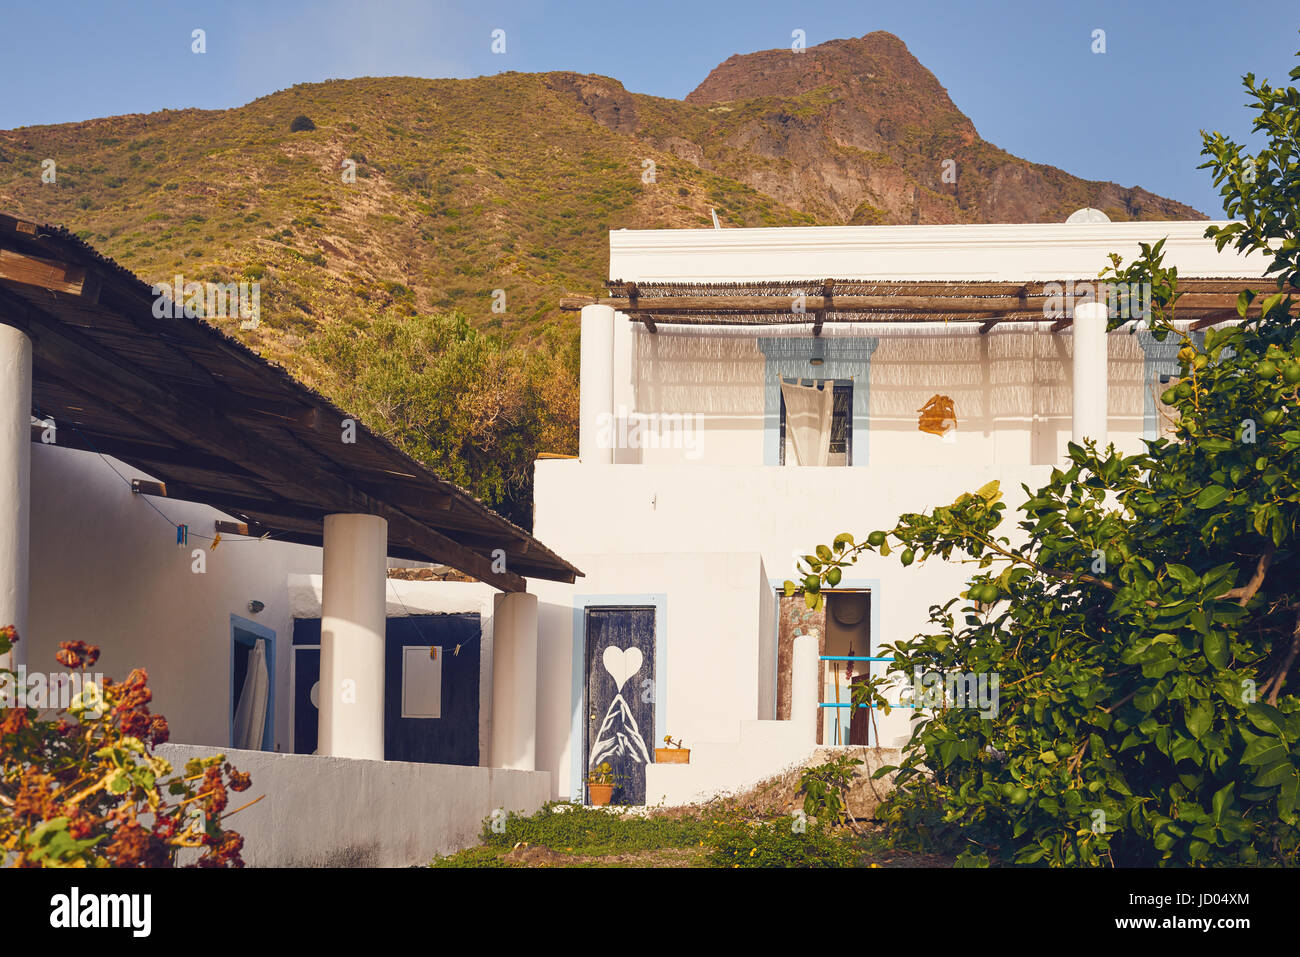 Aeolian Islands - Ginostra - Sicily - typical place of residence - Stock Image